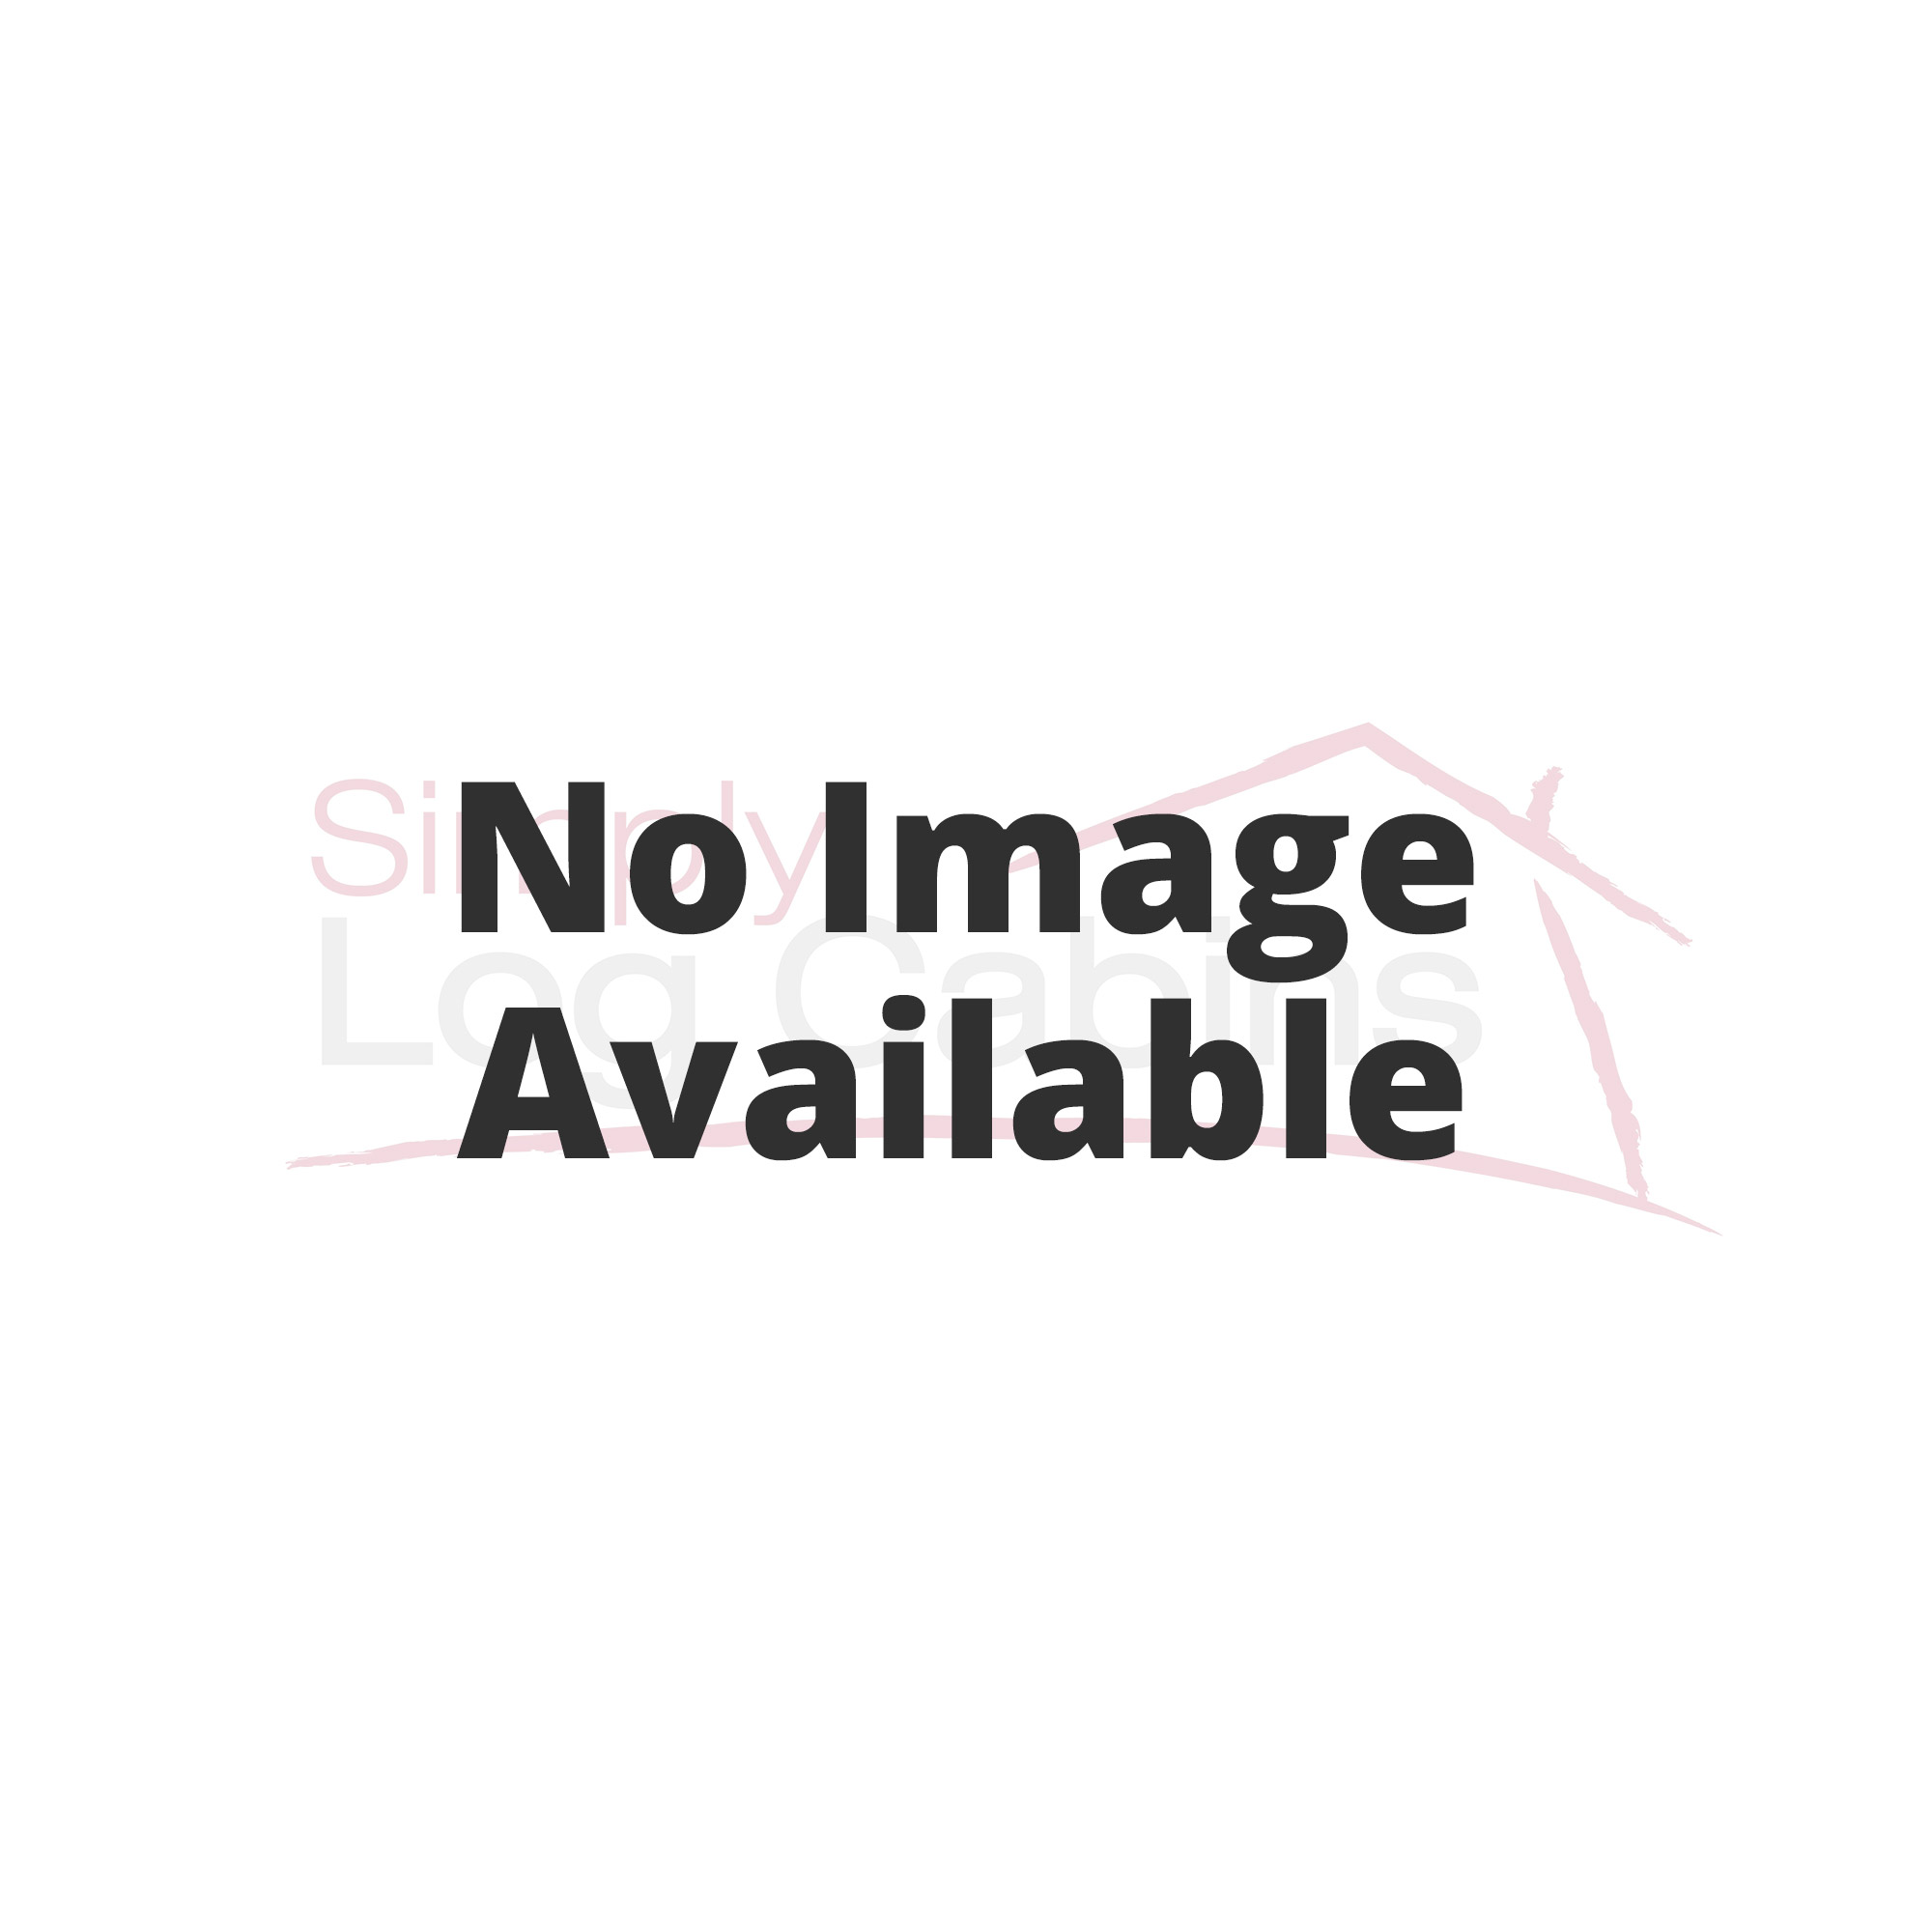 Jagram Vivaldi Gazebo with Tiled Roof